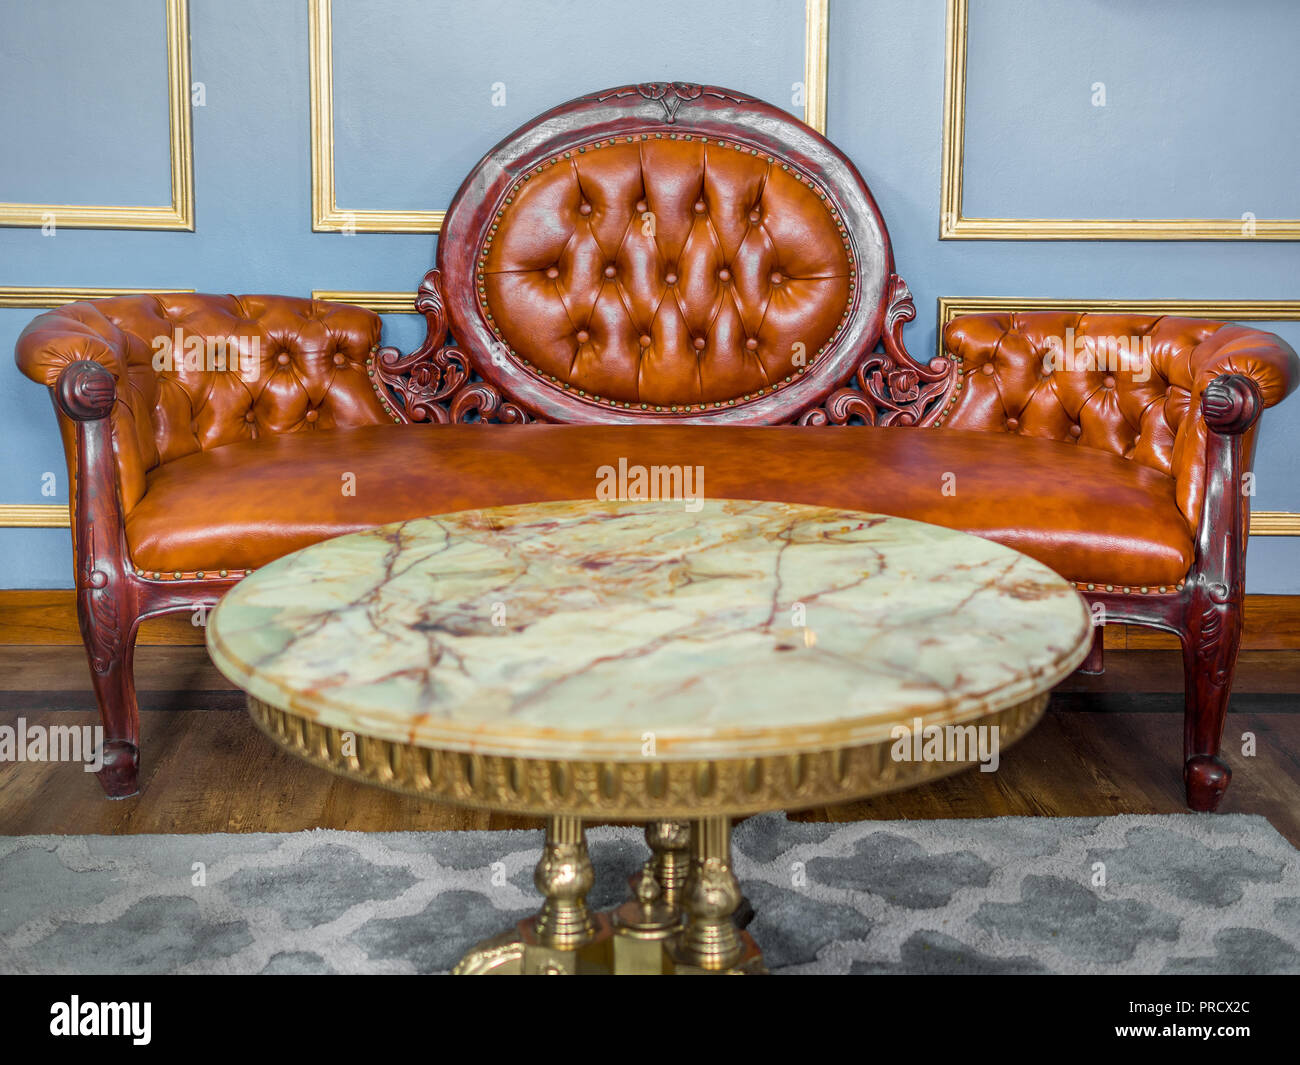 Picture of: Vintage Luxury Red Brown Leather Sofa With Marble And Brass Round Table On Gray Carpet And Wooden Floor On Light Blue And Golden Edge Wall Background Stock Photo Alamy